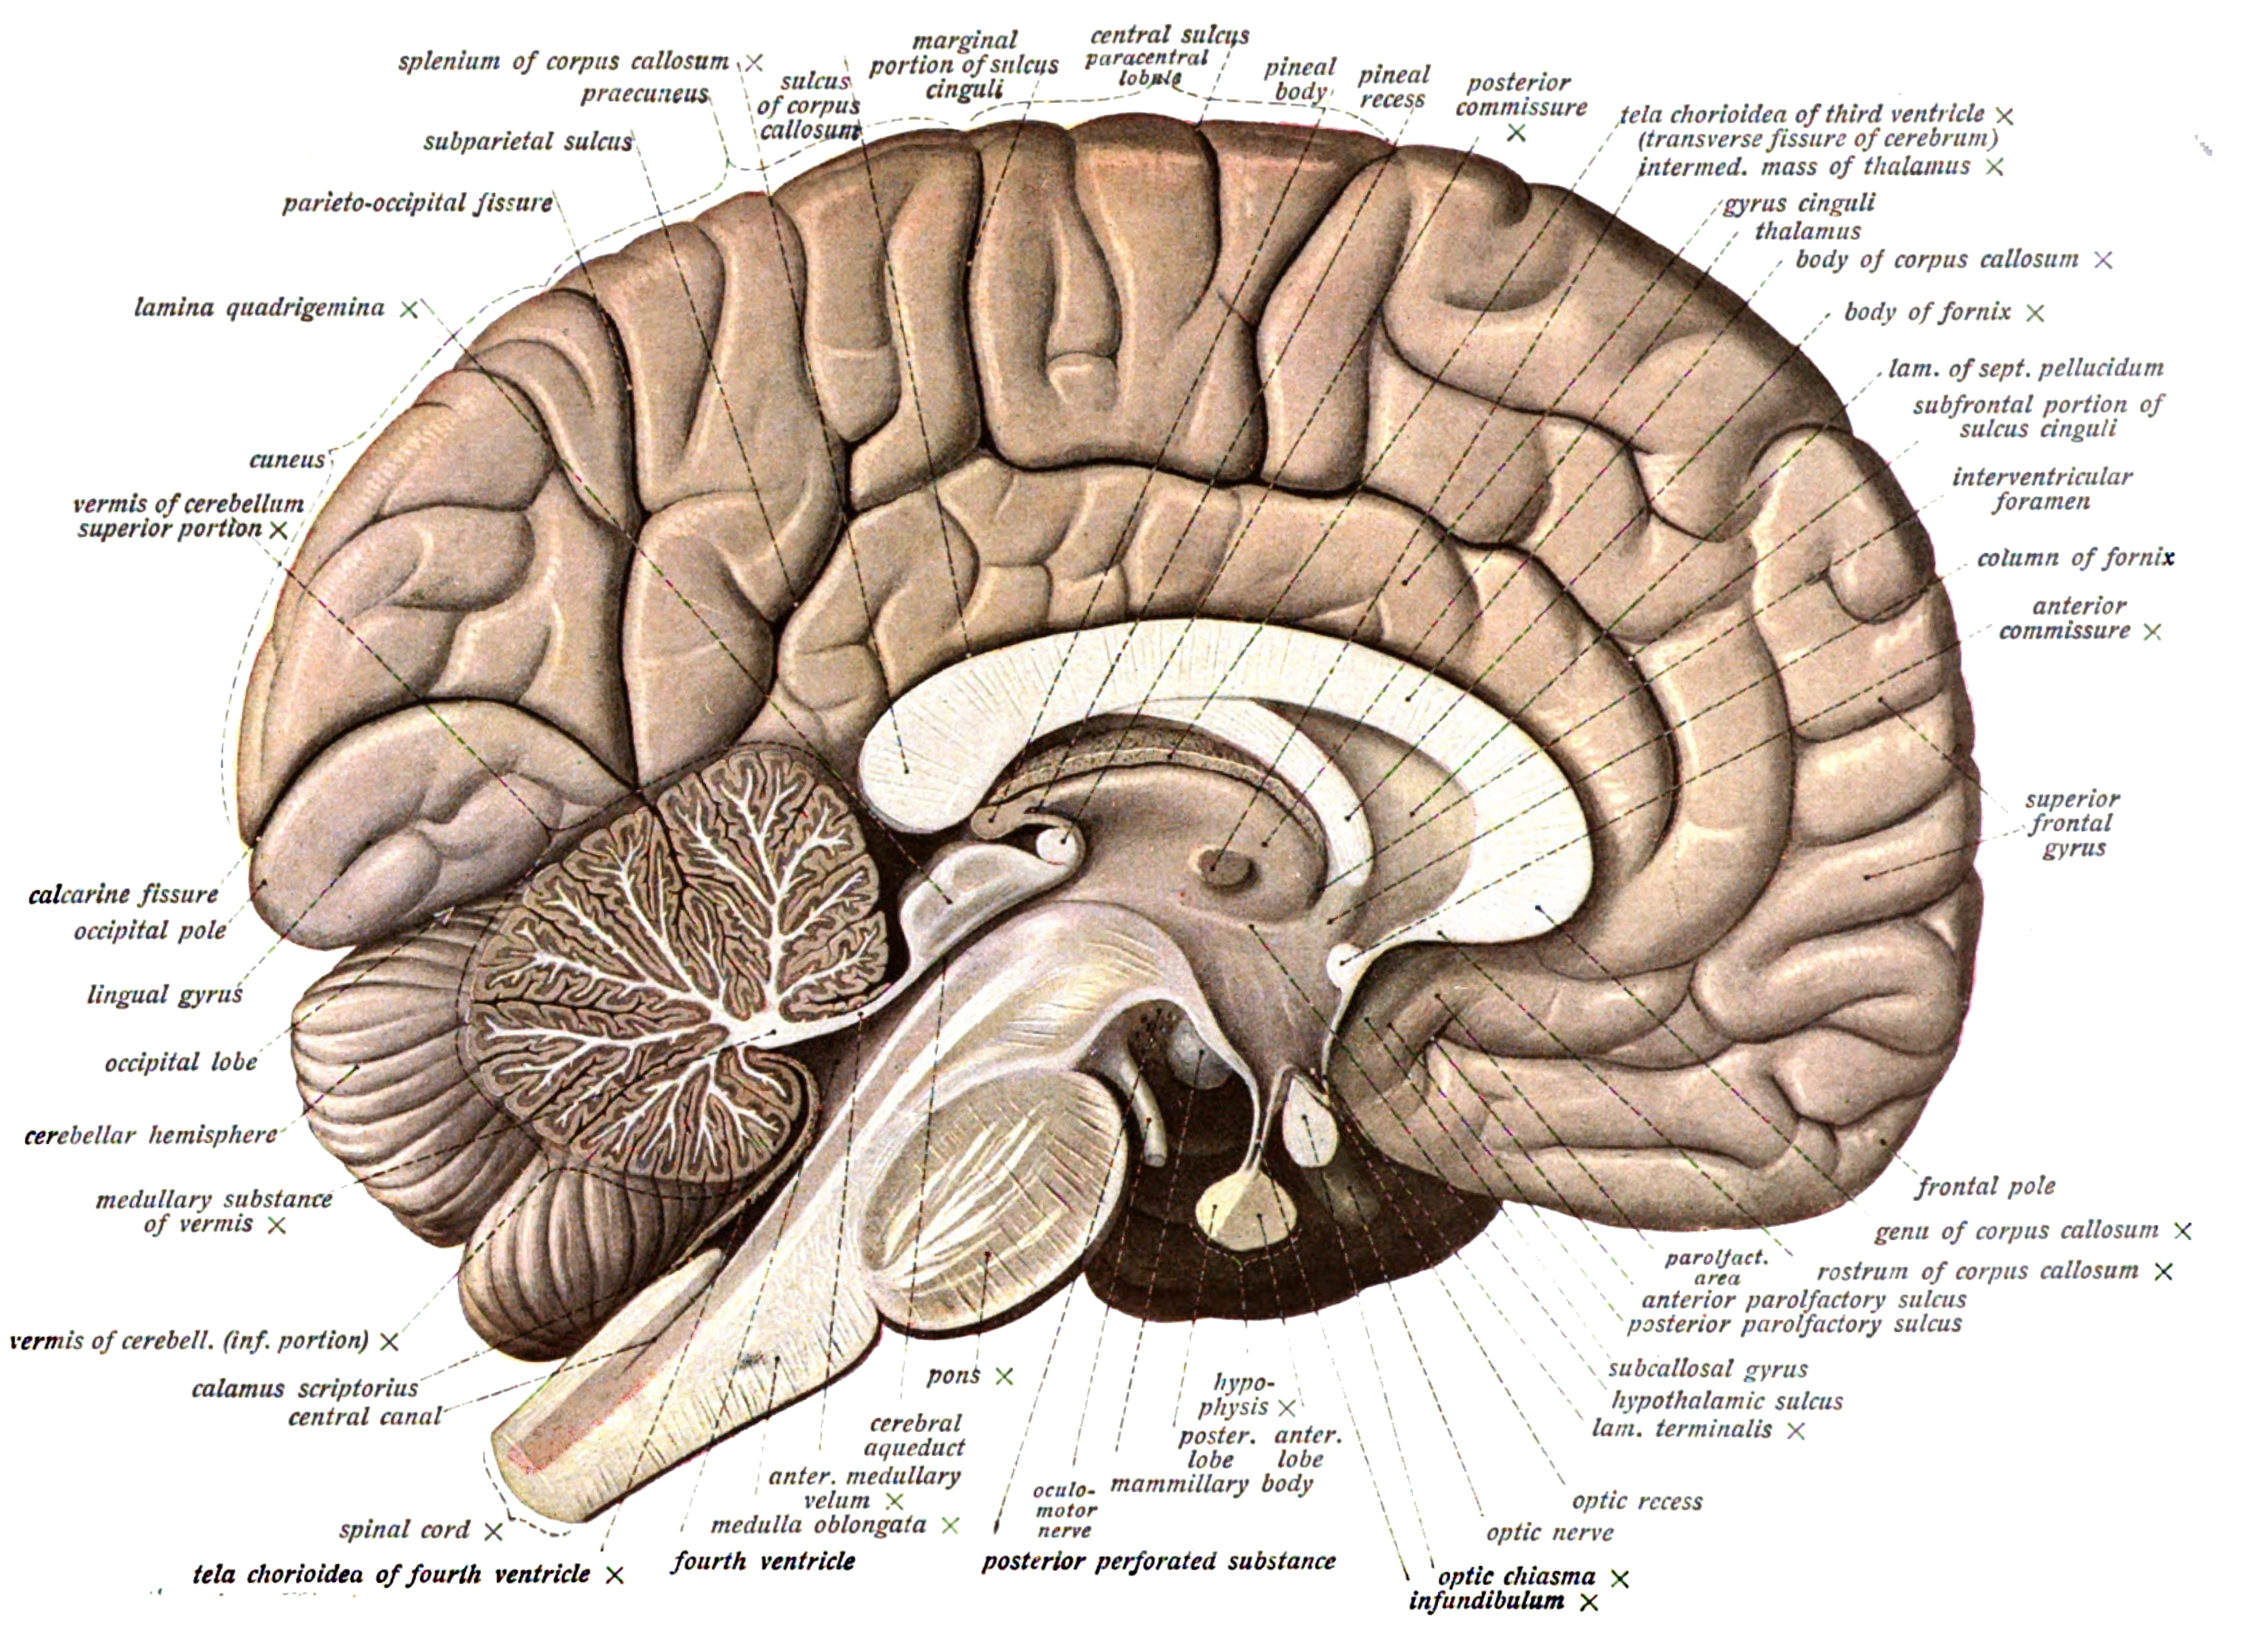 Lateral Fissure Of The Brain Brain with cerebellum showing